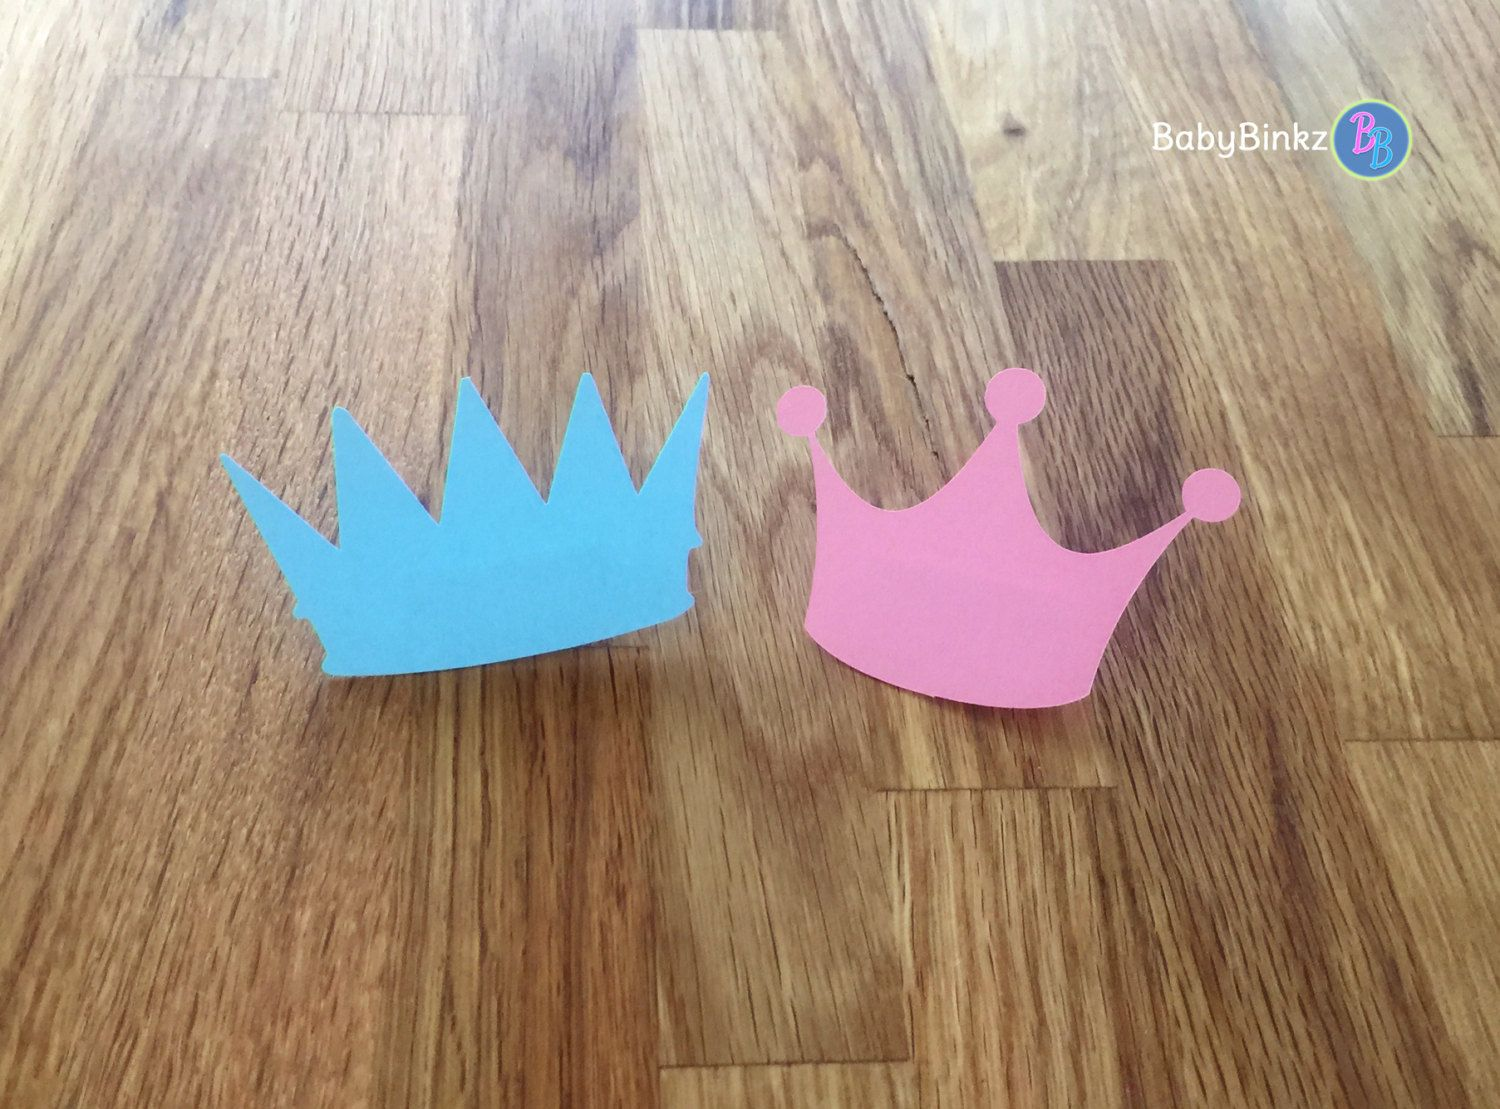 Planning a Gender Reveal Baby Shower? Our Gender Reveal Party Pins will be the perfect addition! Choose your side! Is it a Little Prince or A Little Princess? Let your guests vote for the gender by selecting a Tiara or Crown pin when they arrive!  Each set includes 6 x 3 die cut blue crowns and 6 x 2.5 die cut pink tiaras created out of heavy weight card stock with a mounted bar pin. All 12 of your pins come fully assembled & ready to use!   Need more than 12? You can add additional sets ...